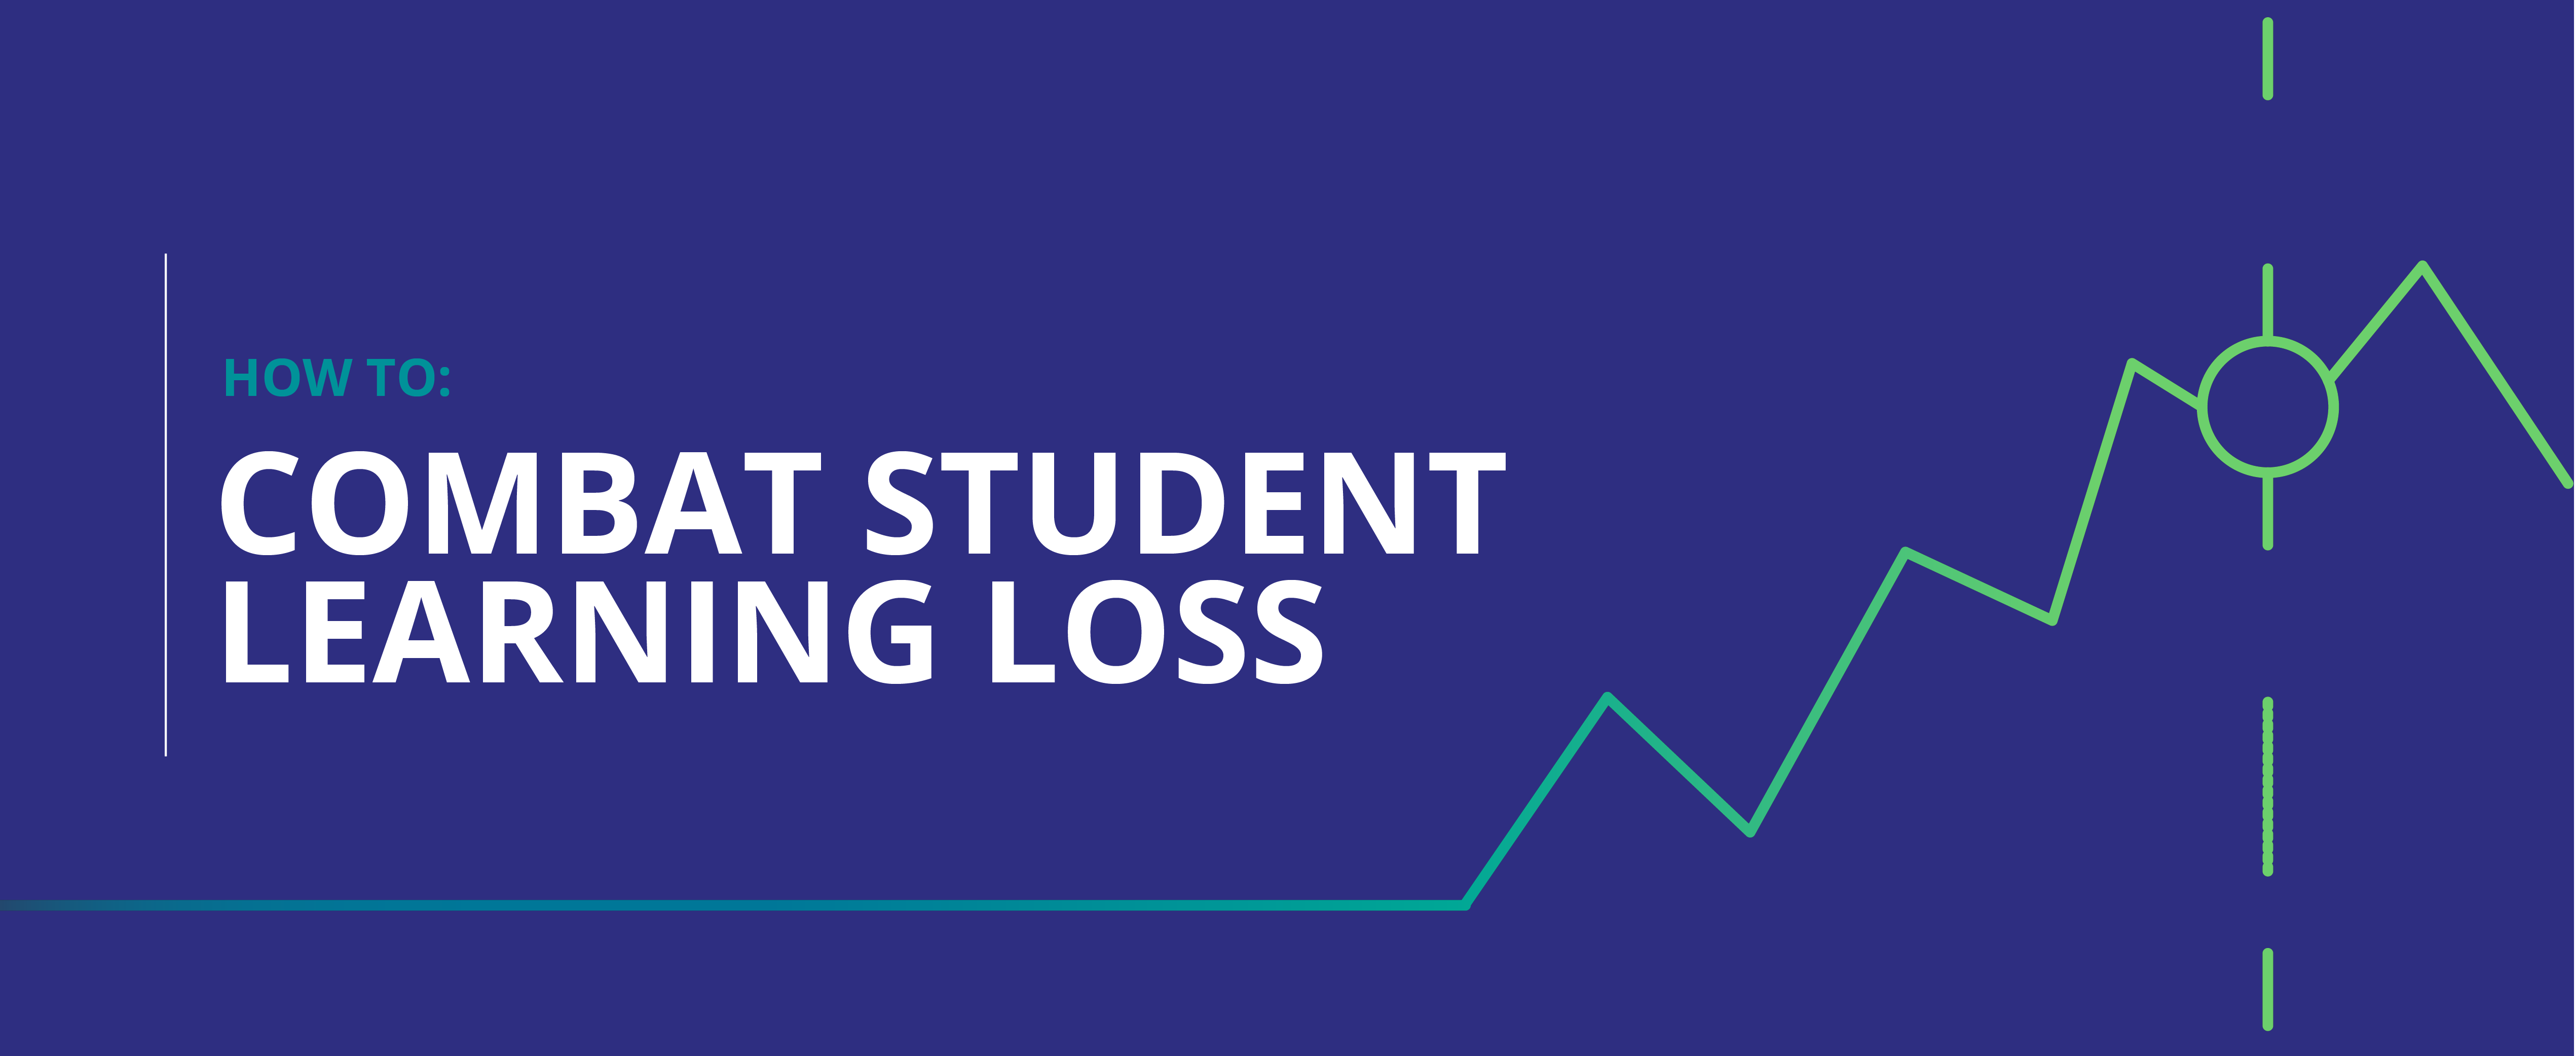 How to combat student learning loss with Precision Exams by YouScience